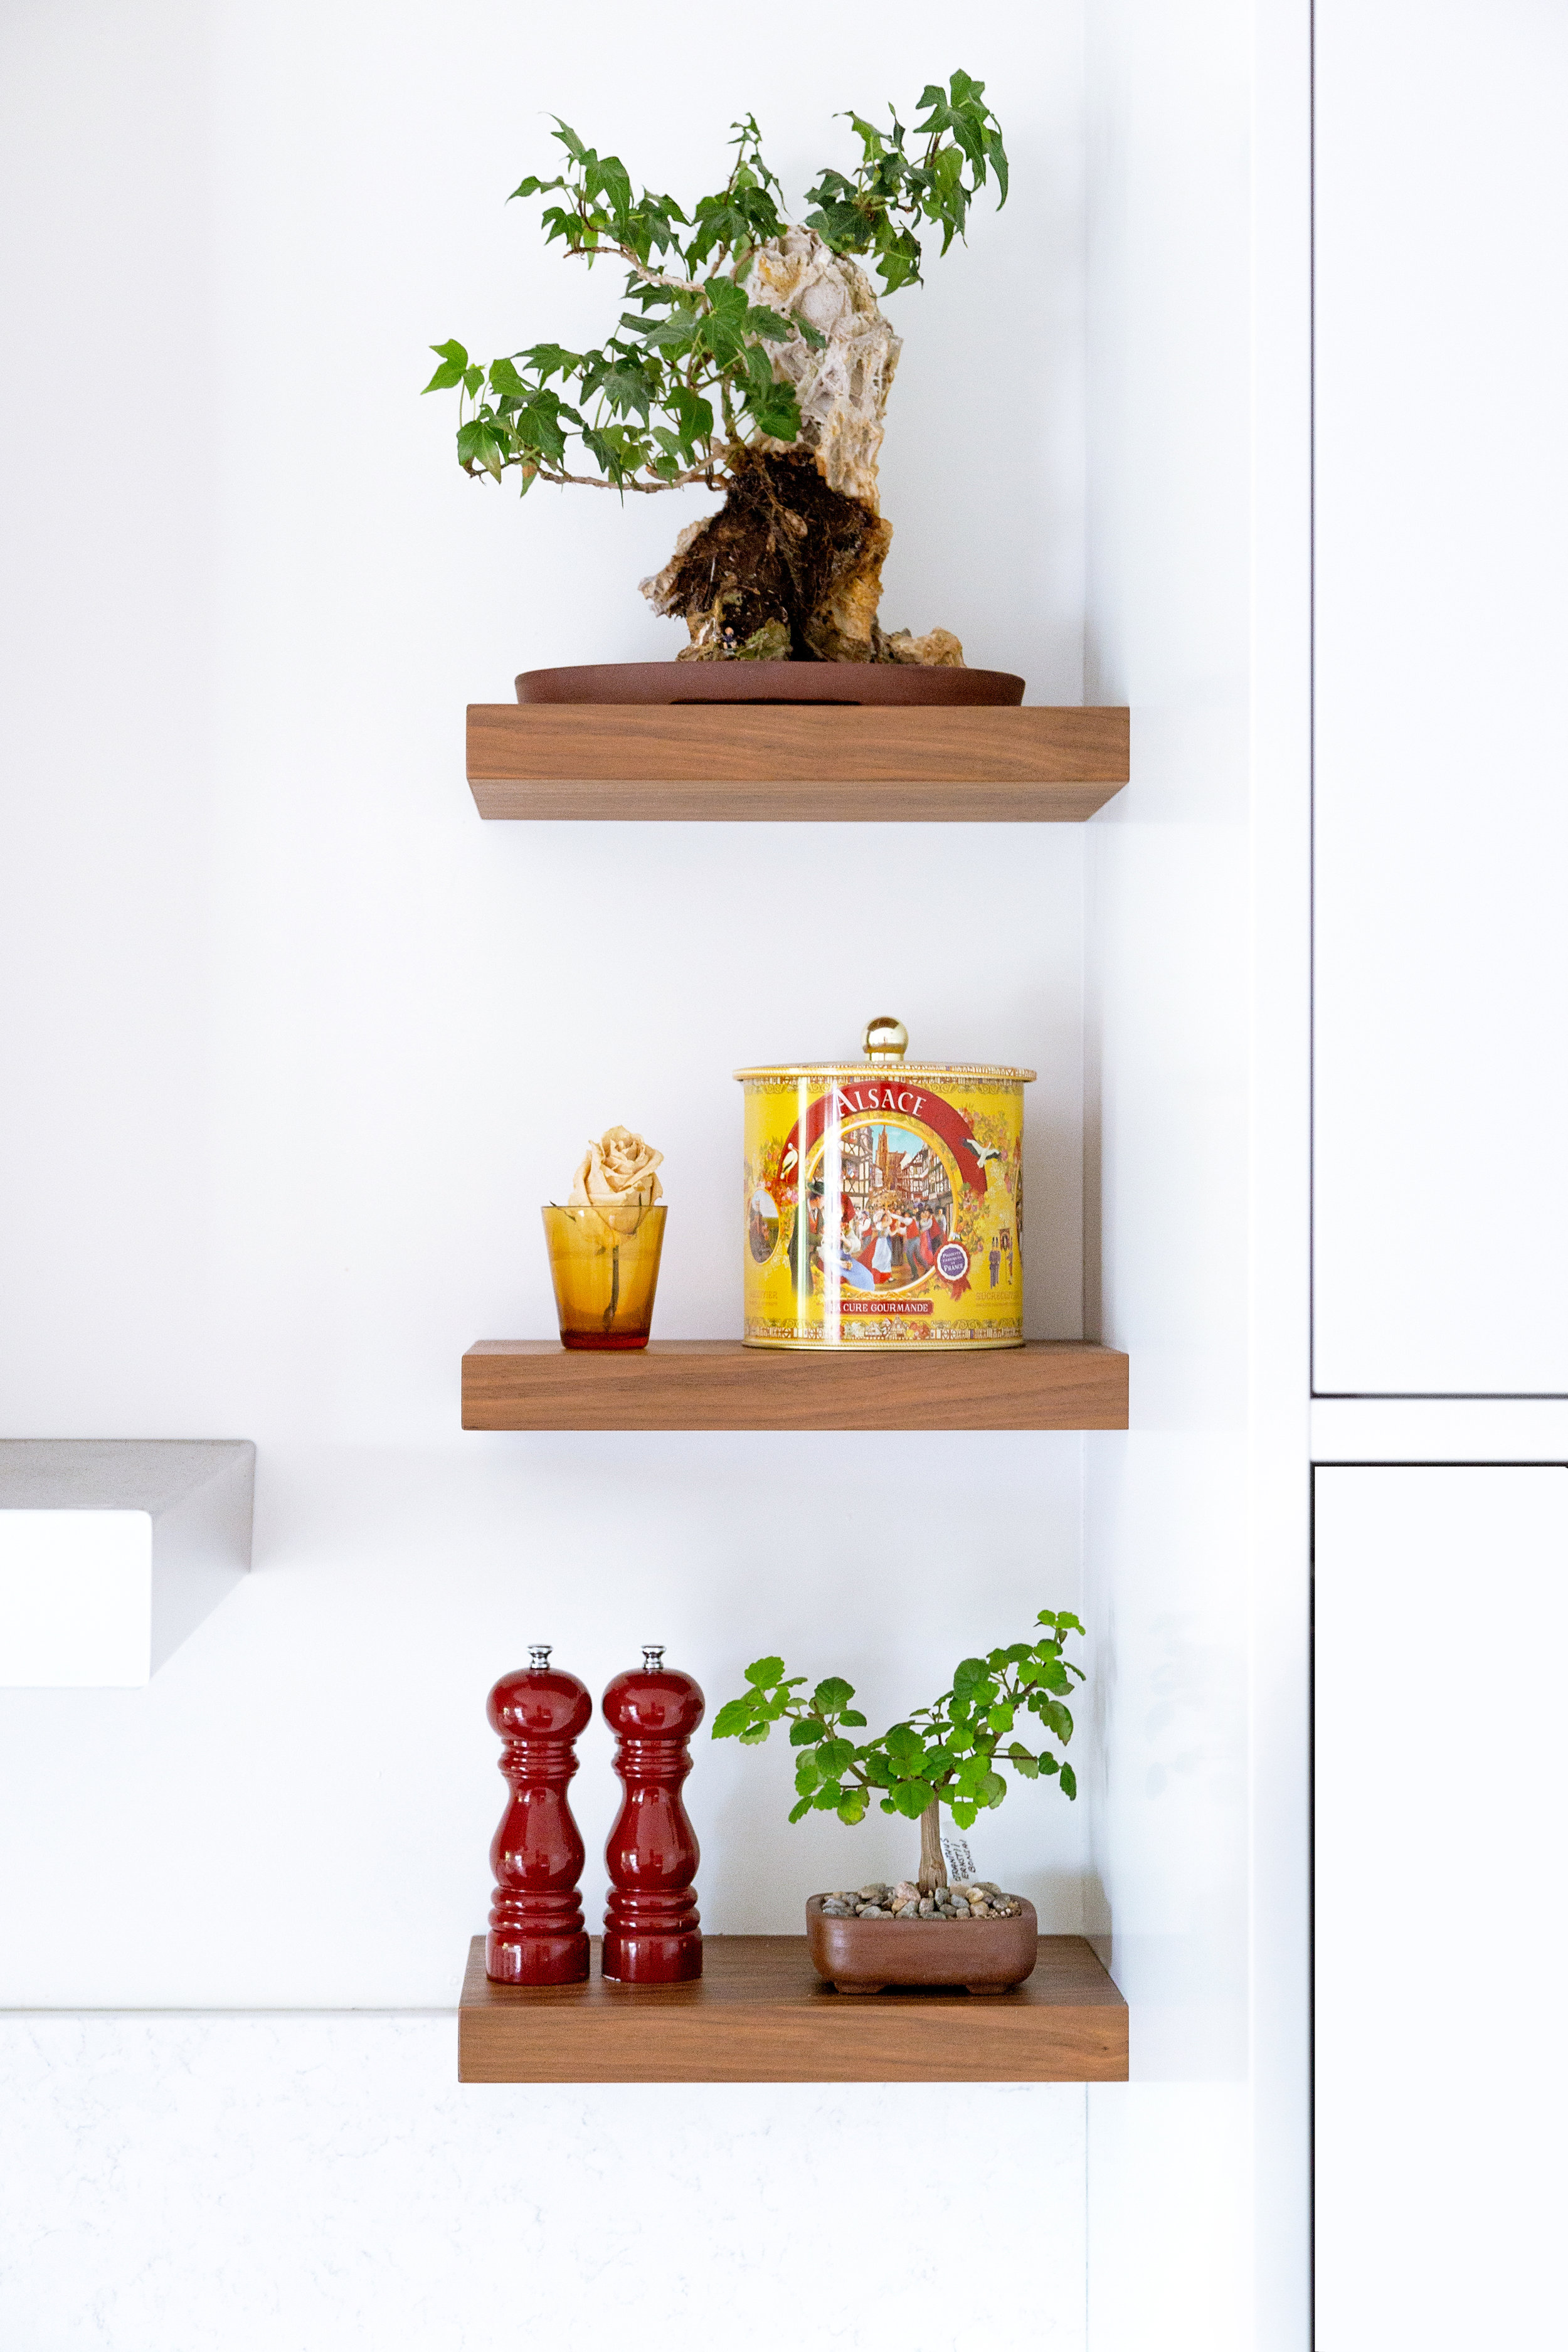 3 - Decorative shelves - Bring life to your traditional kitchen by adding a few small shelves. This is the perfect way to add a touch of decoration without cluttering your workspace, especially if you have a small kitchen. Plants, art projects, family photos, decorative objects... give free rein to your imagination and personalize the heart of your home.